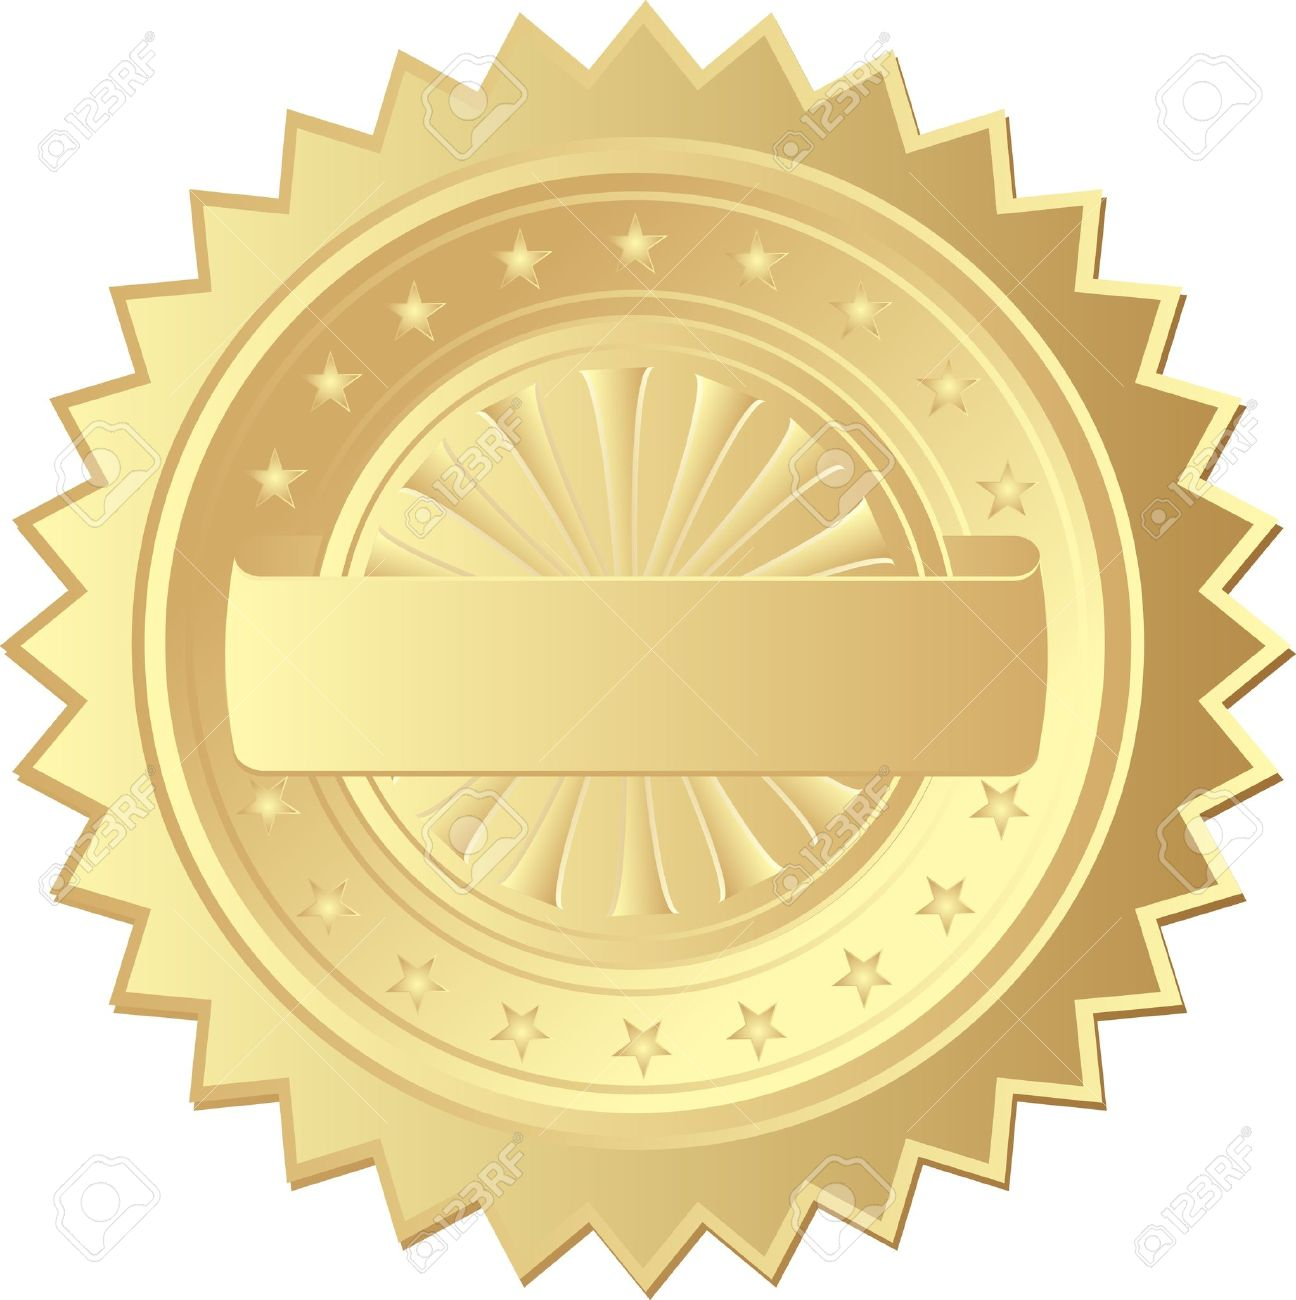 Gold Seal Royalty Free Cliparts, Vectors, #467684.